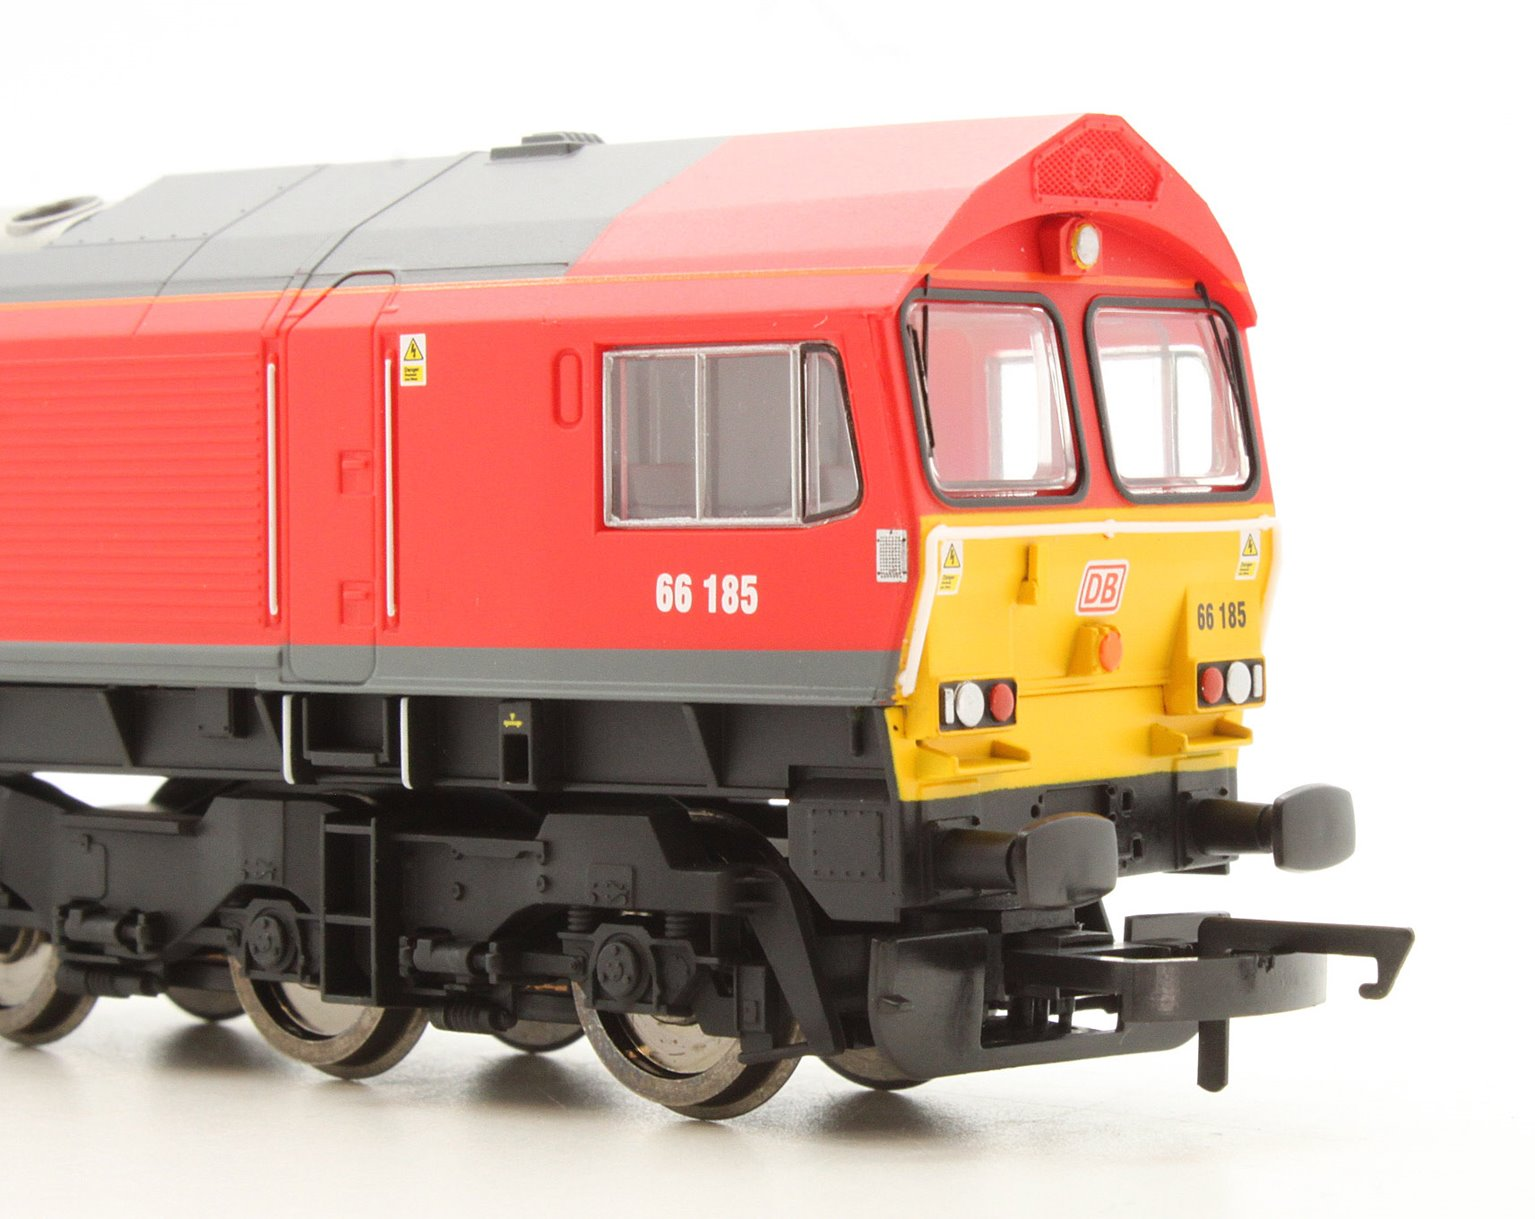 Co-Co Diesel 'DP World London Gateway' '66185' Class 66 Locomotive